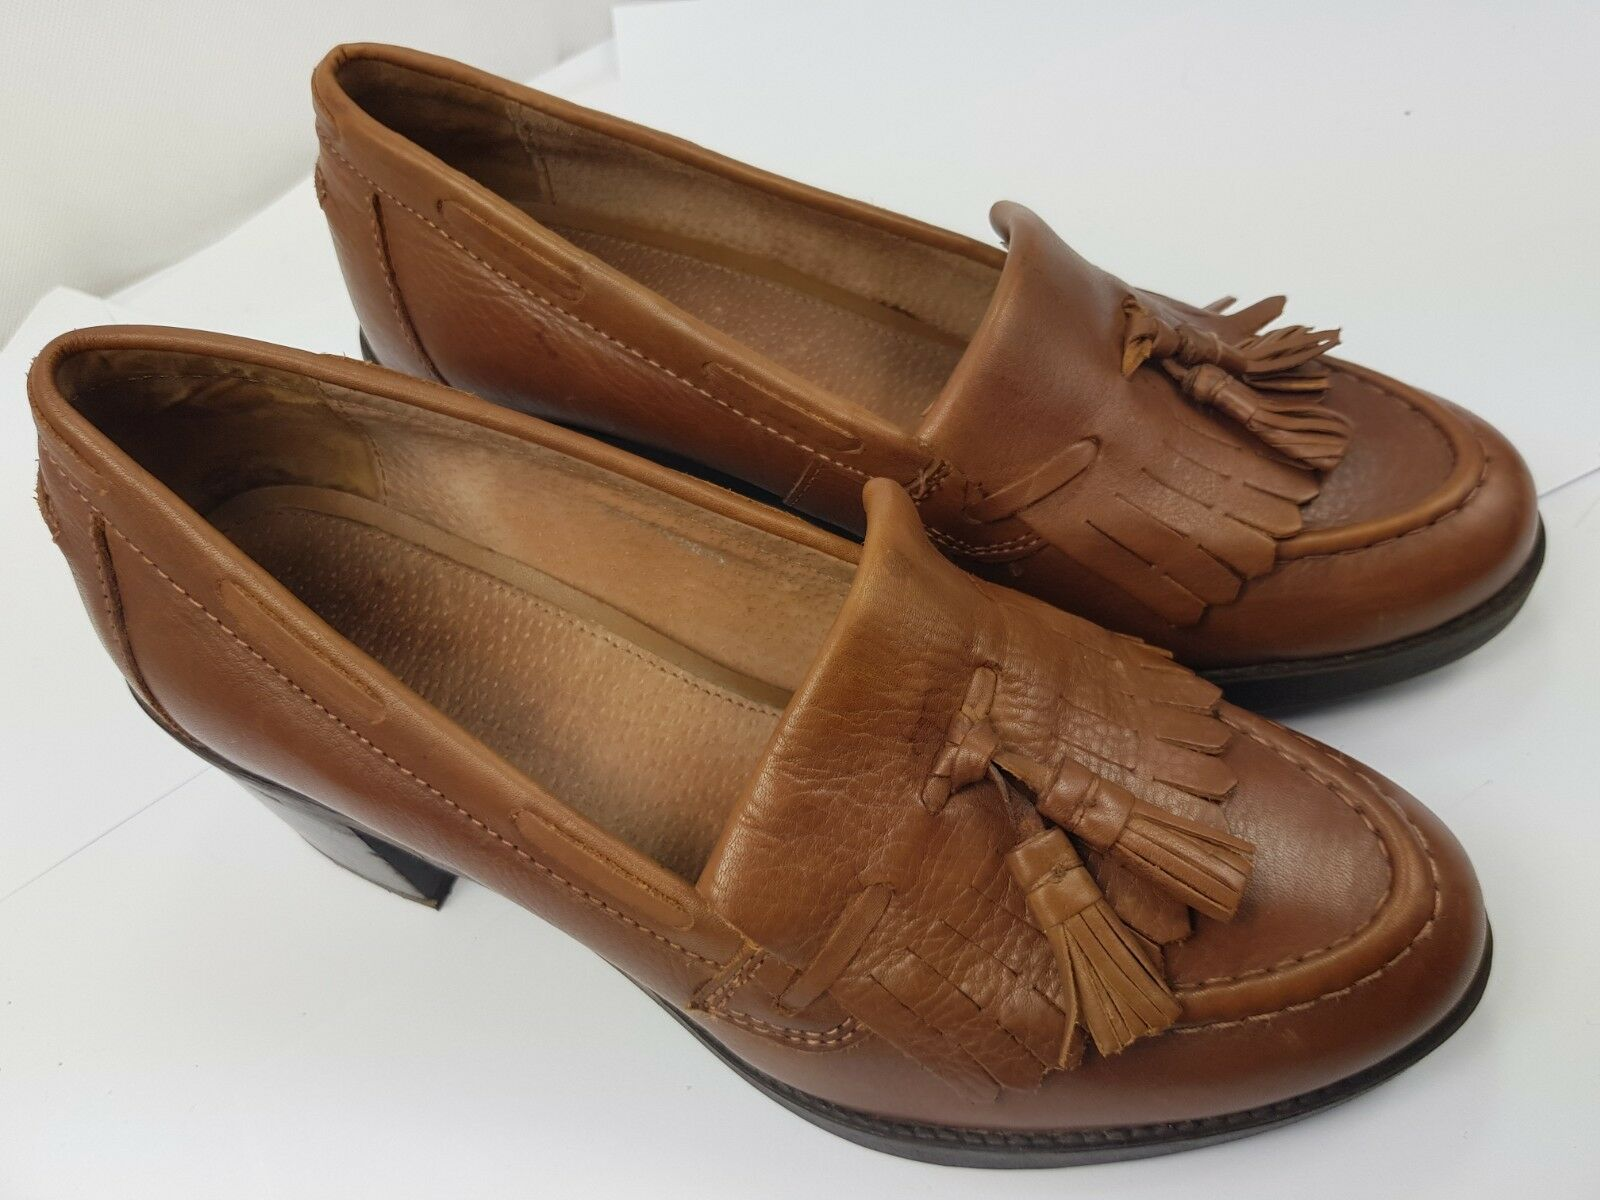 OFFICE Woman's Brown Leather Penny Tassel Slip On Heel shoes - UK 6 - VGC